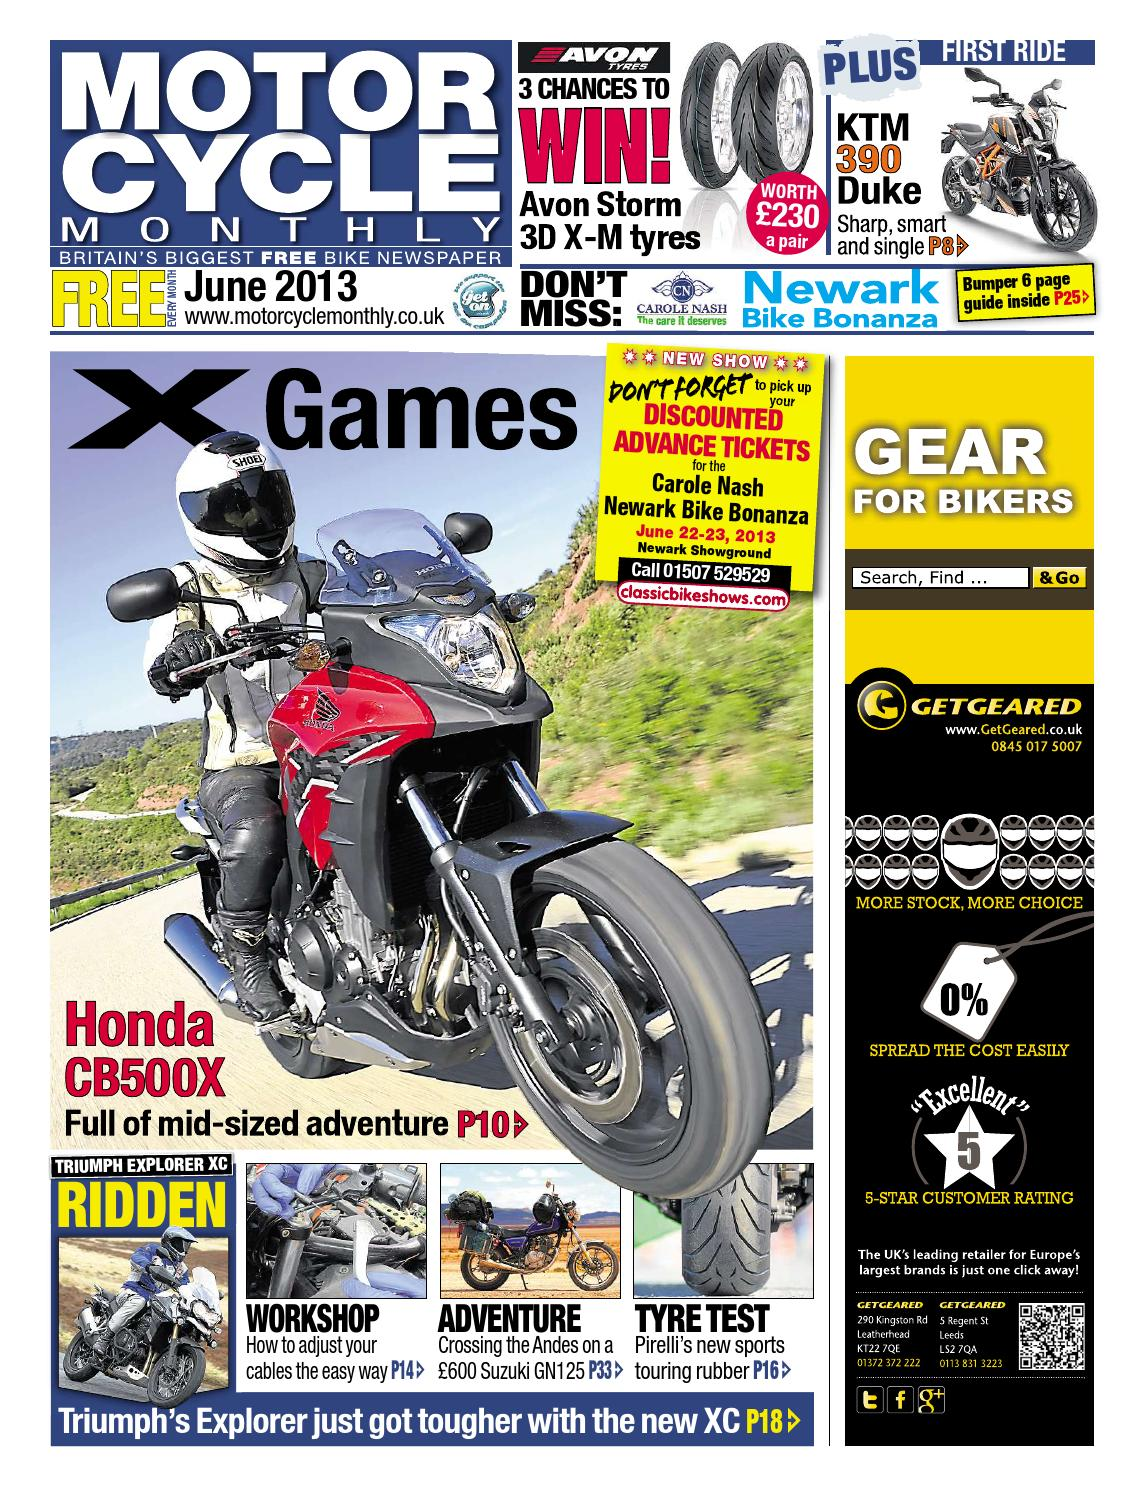 Motor Cycle Monthly August 2014 Full Edition By Mortons Media 2002 Bmw R1150 Gs Instrument Cluster Fuse Box Diagram June 2013